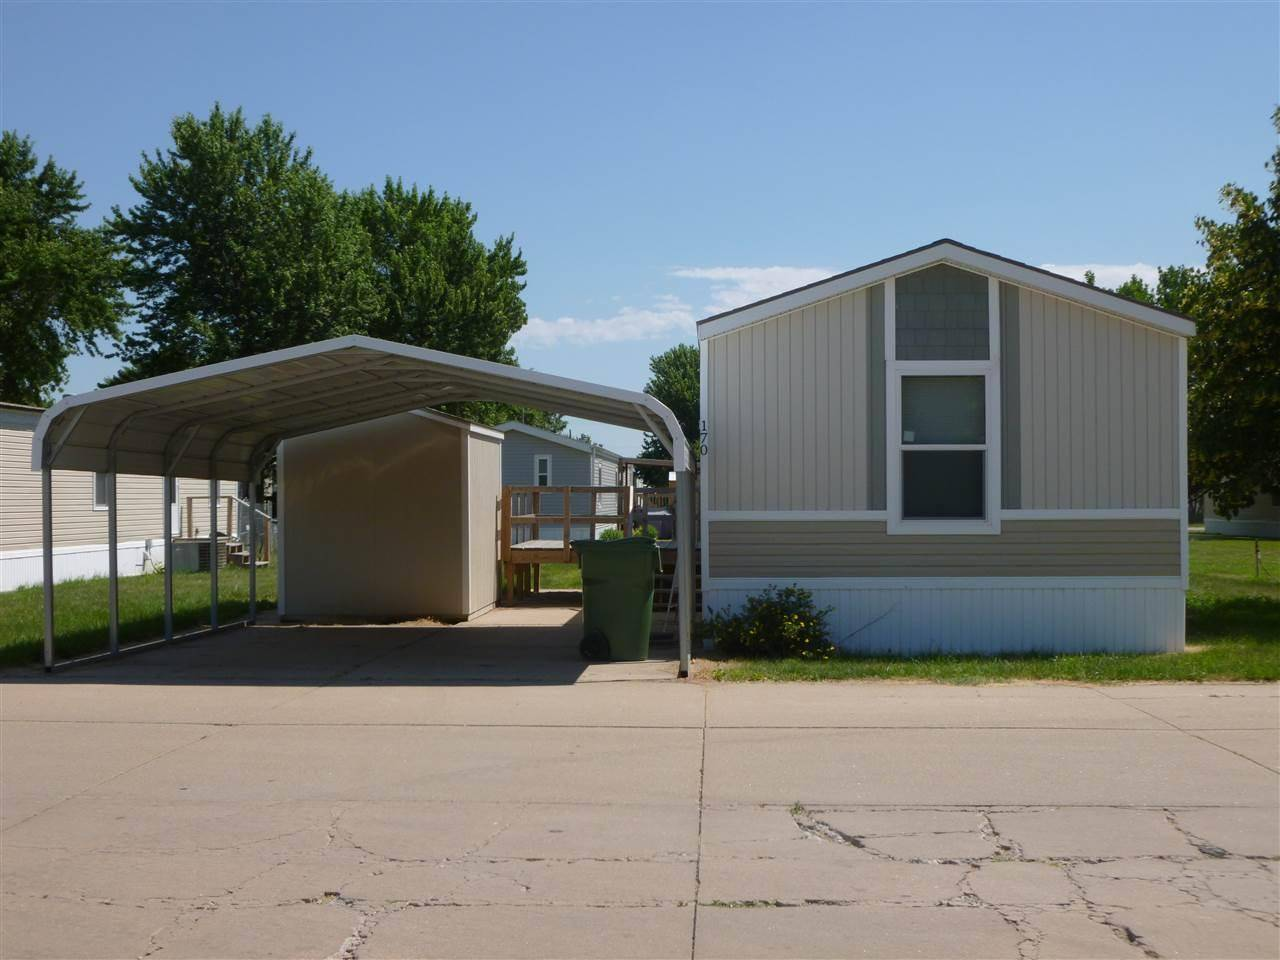 Valley Mobile Homes Kearney Mls